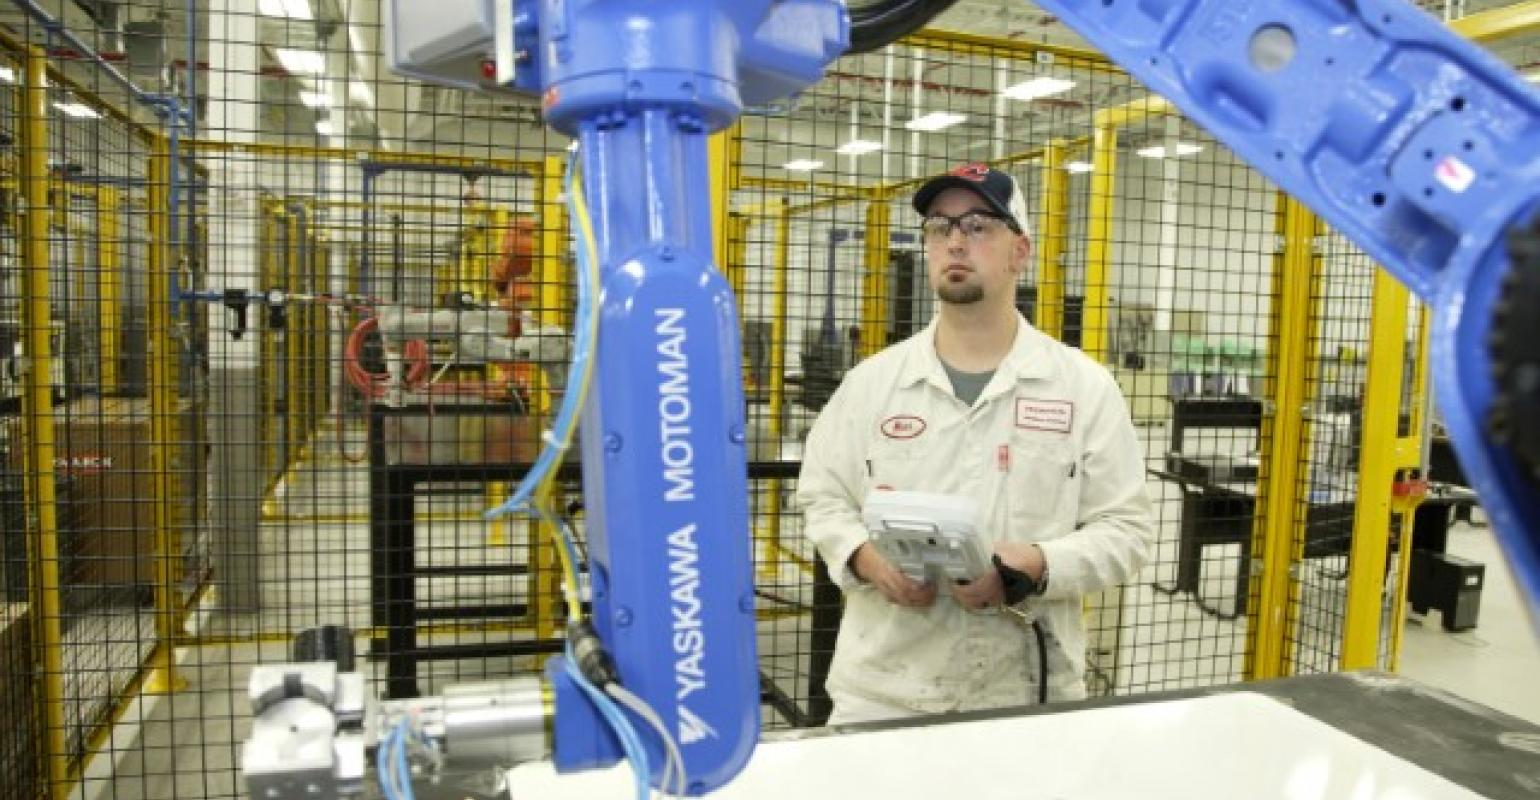 Honda Initiative Clears Career Path to Manufacturing | WardsAuto